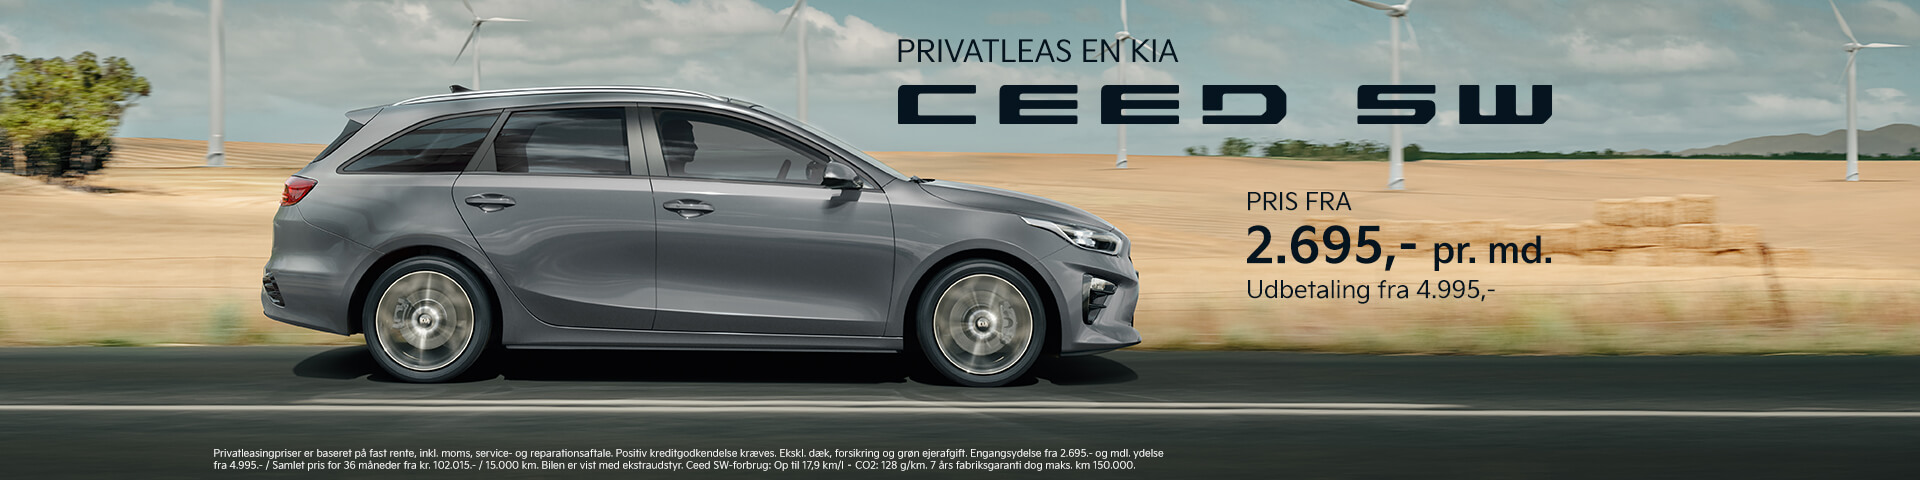 Kia privatleasing – Ceed SW